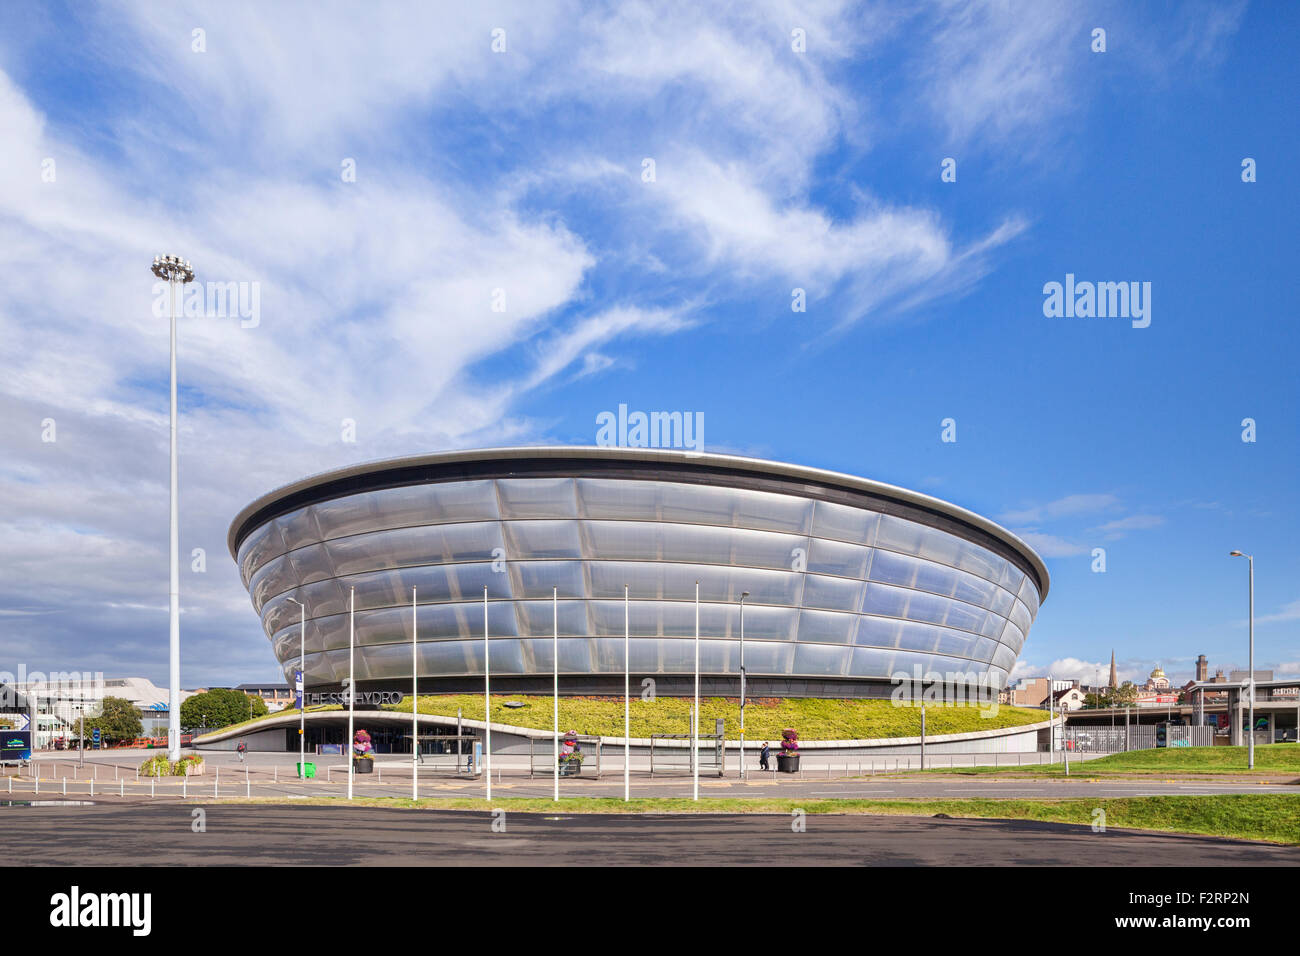 The SSE Hydro Arena, a 13,000 seat performance venue, located next to the Scottish Exhibition and Conference Centre - Stock Image